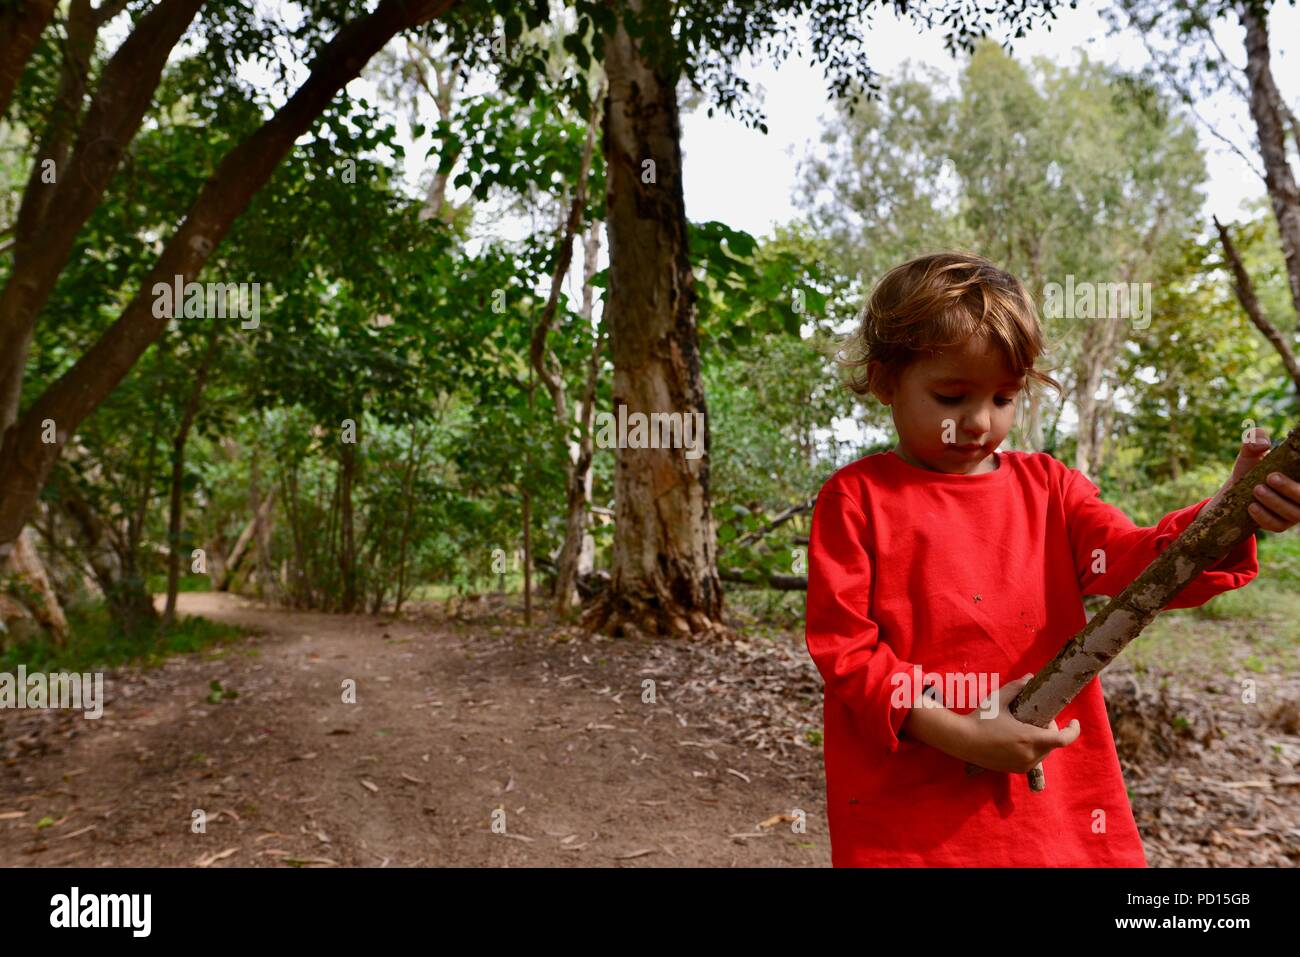 Child looks at a stick she has just picked up, Booroona walking trail on the Ross River, Rasmussen QLD 4815, Australia Stock Photo